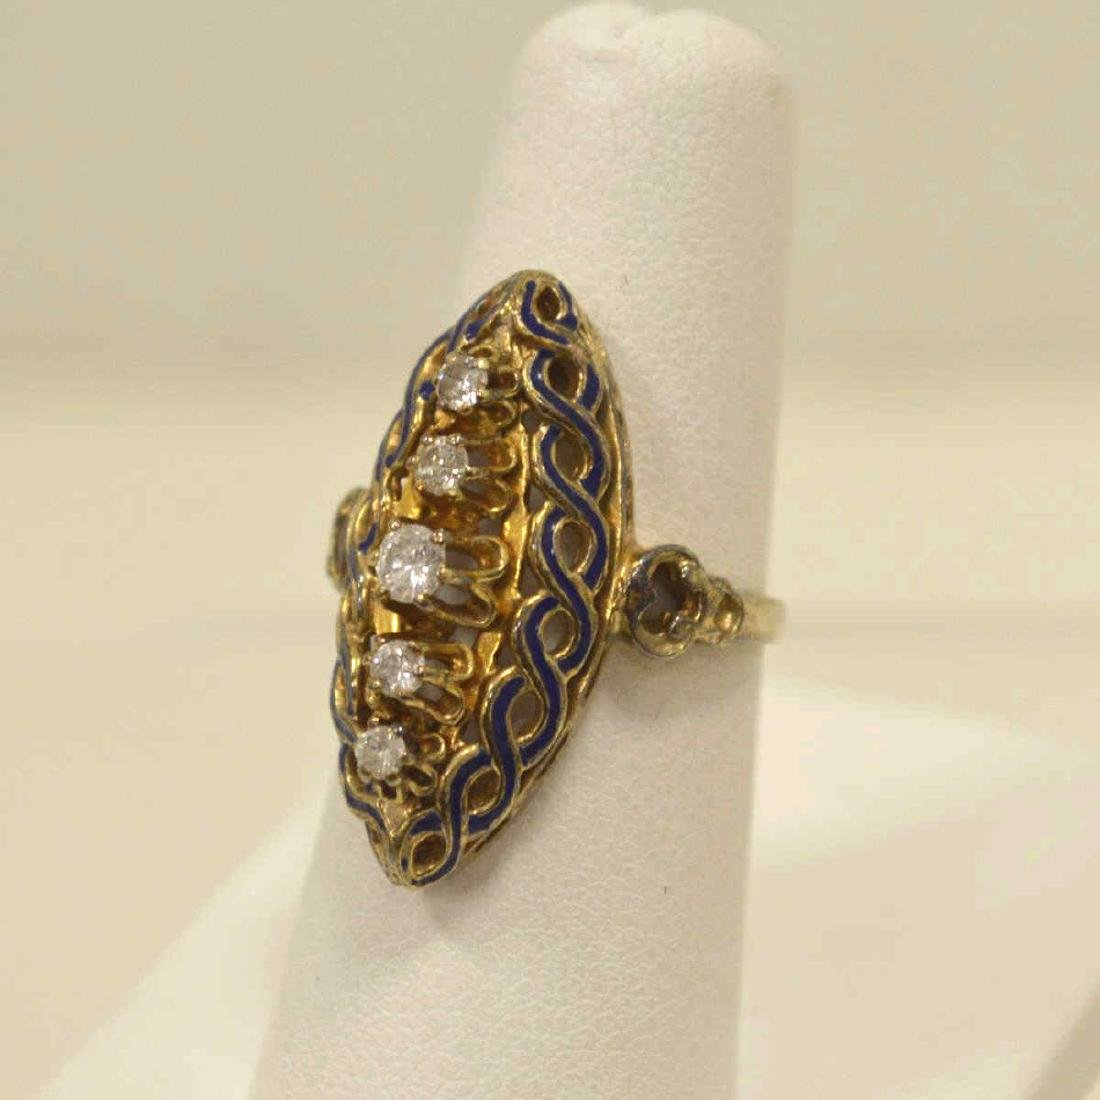 Vintage 14kt yellow gold diamond fashion ring - 3